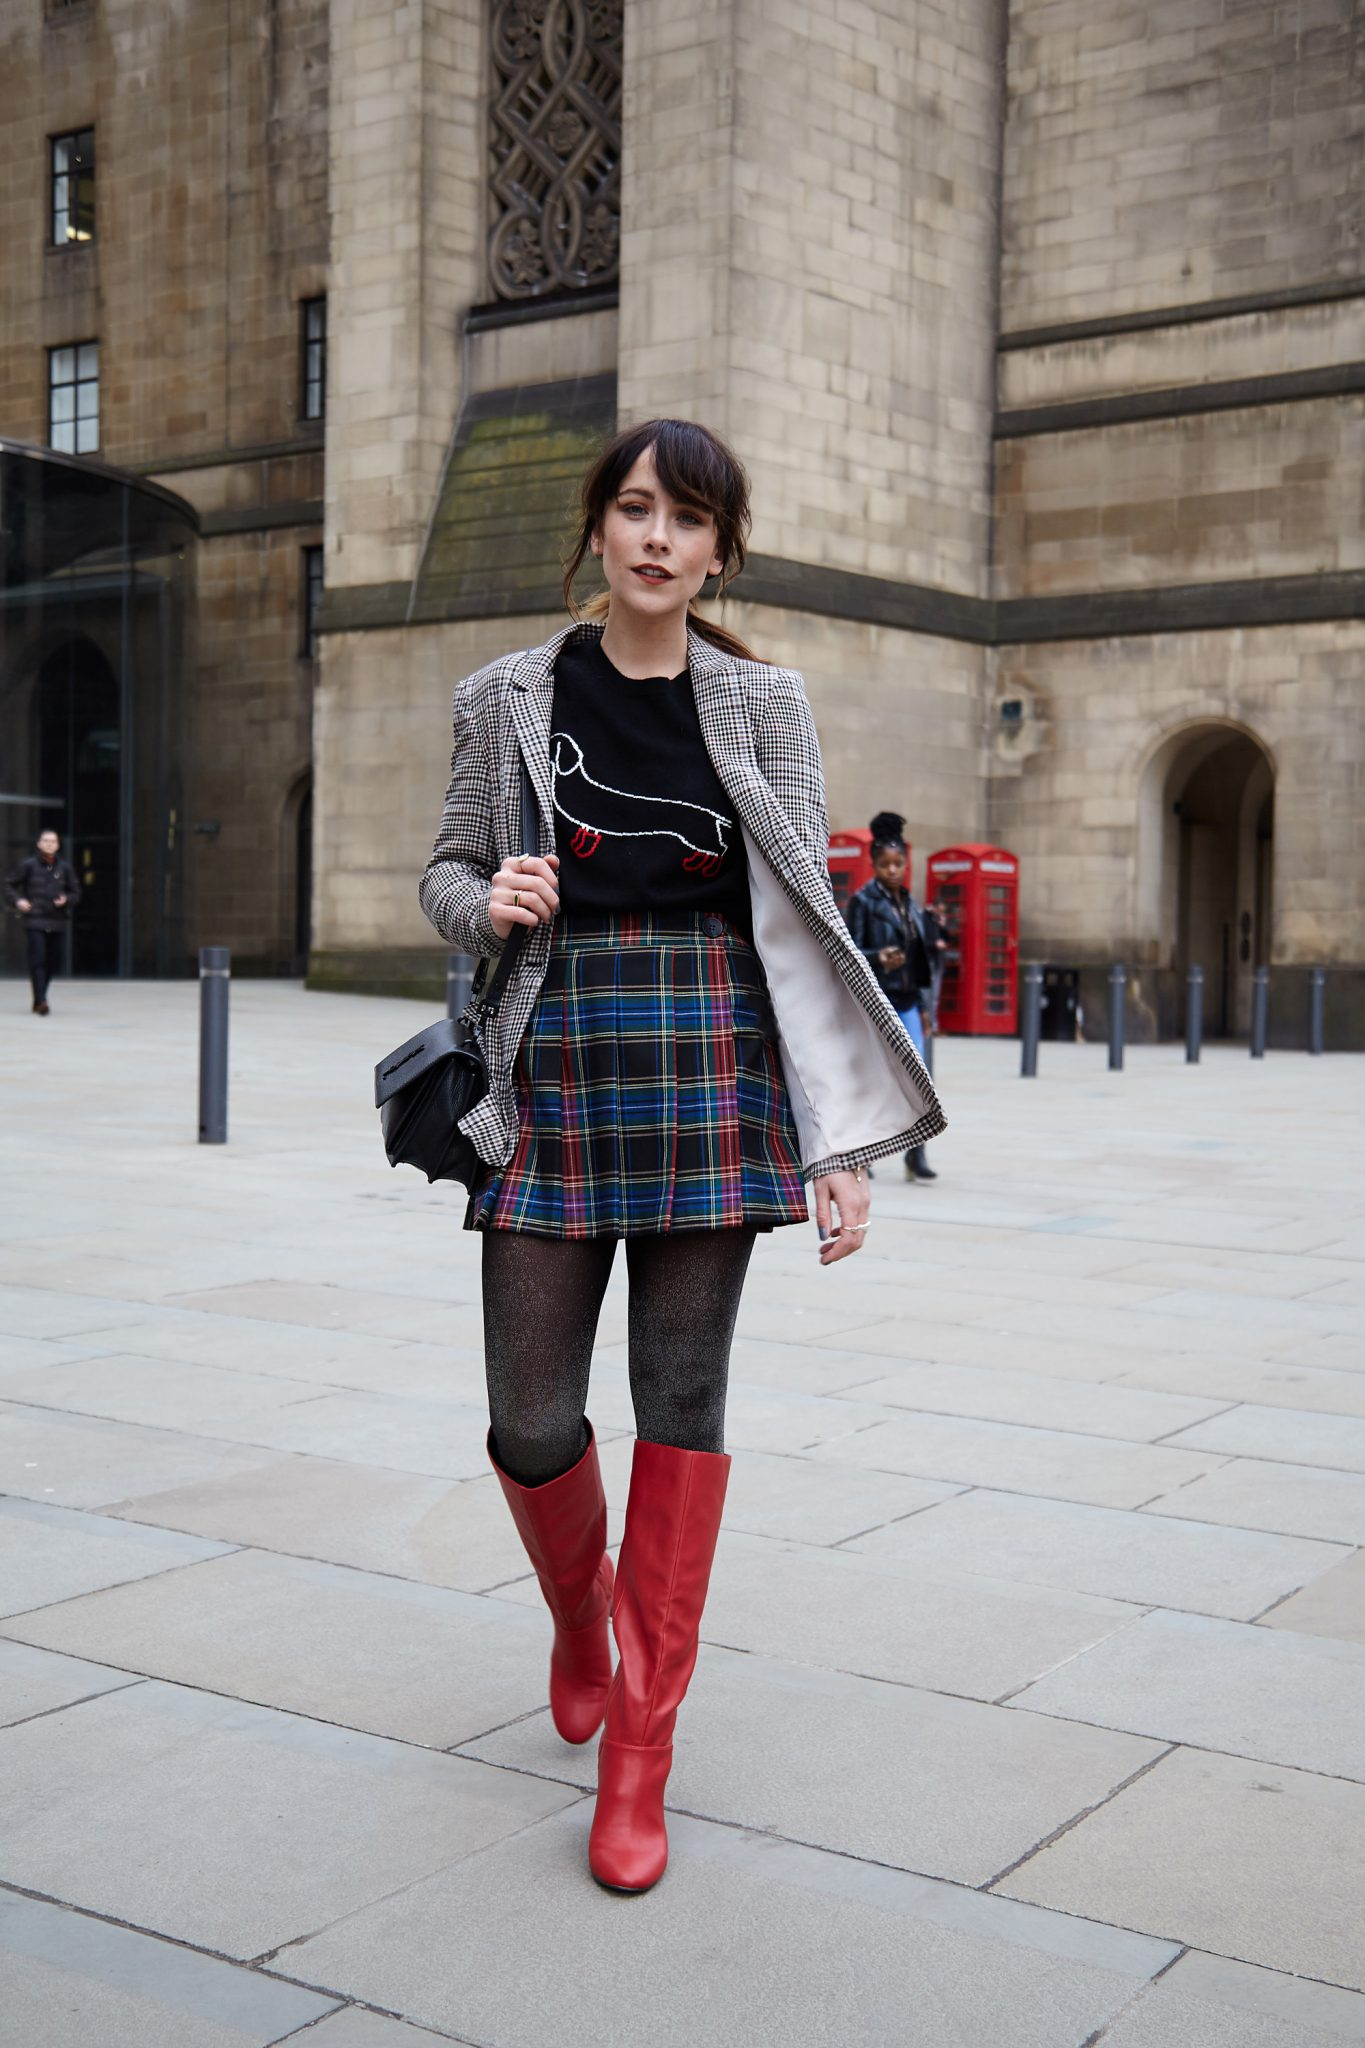 MEGAN ELLABY MANCUNIAN FASHION BLOGGER